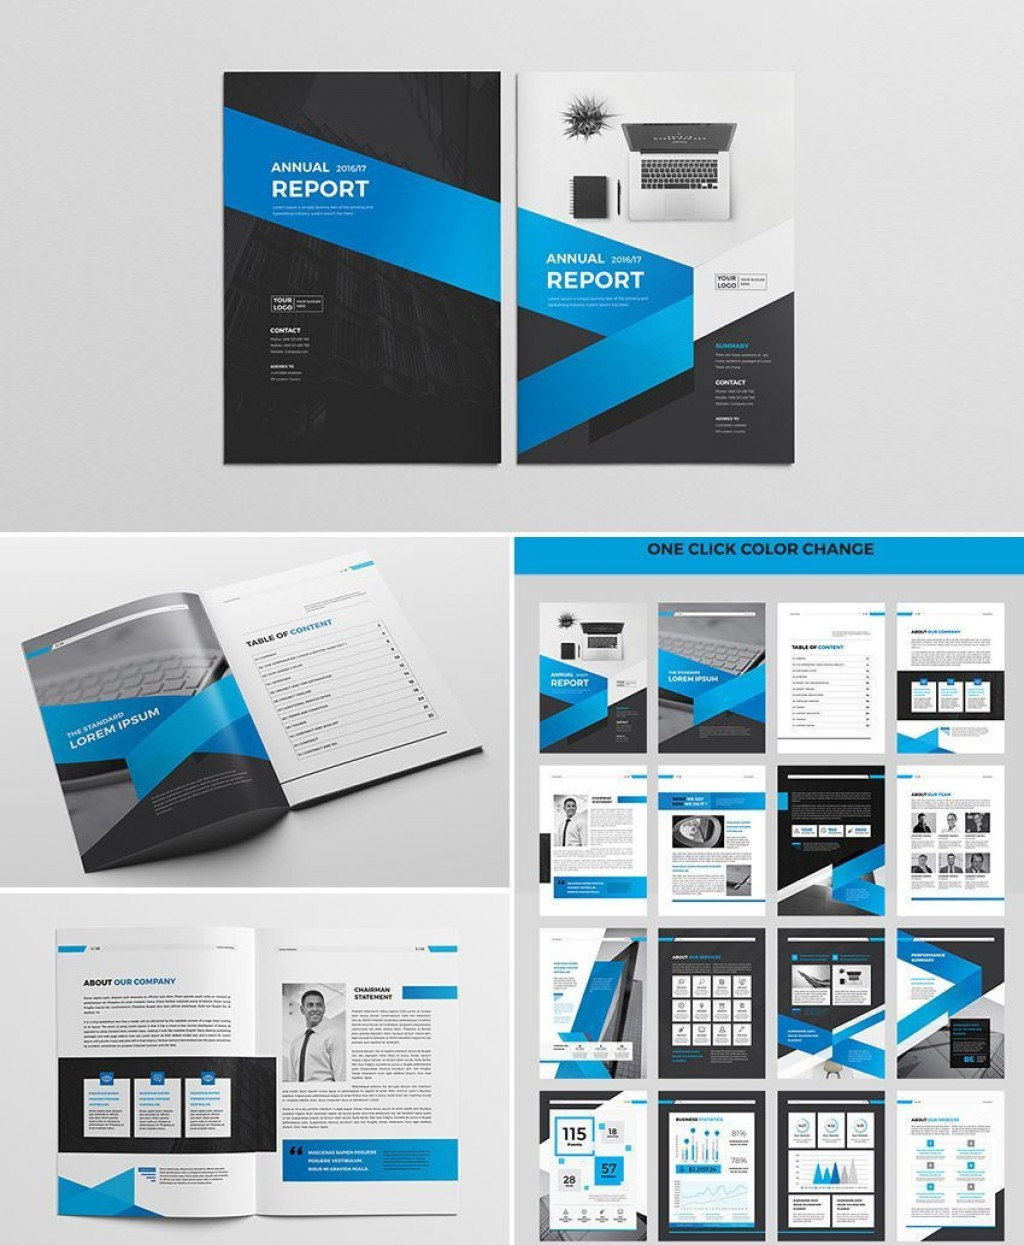 002 Imposing Free Annual Report Template Indesign Example  Adobe Non ProfitLarge